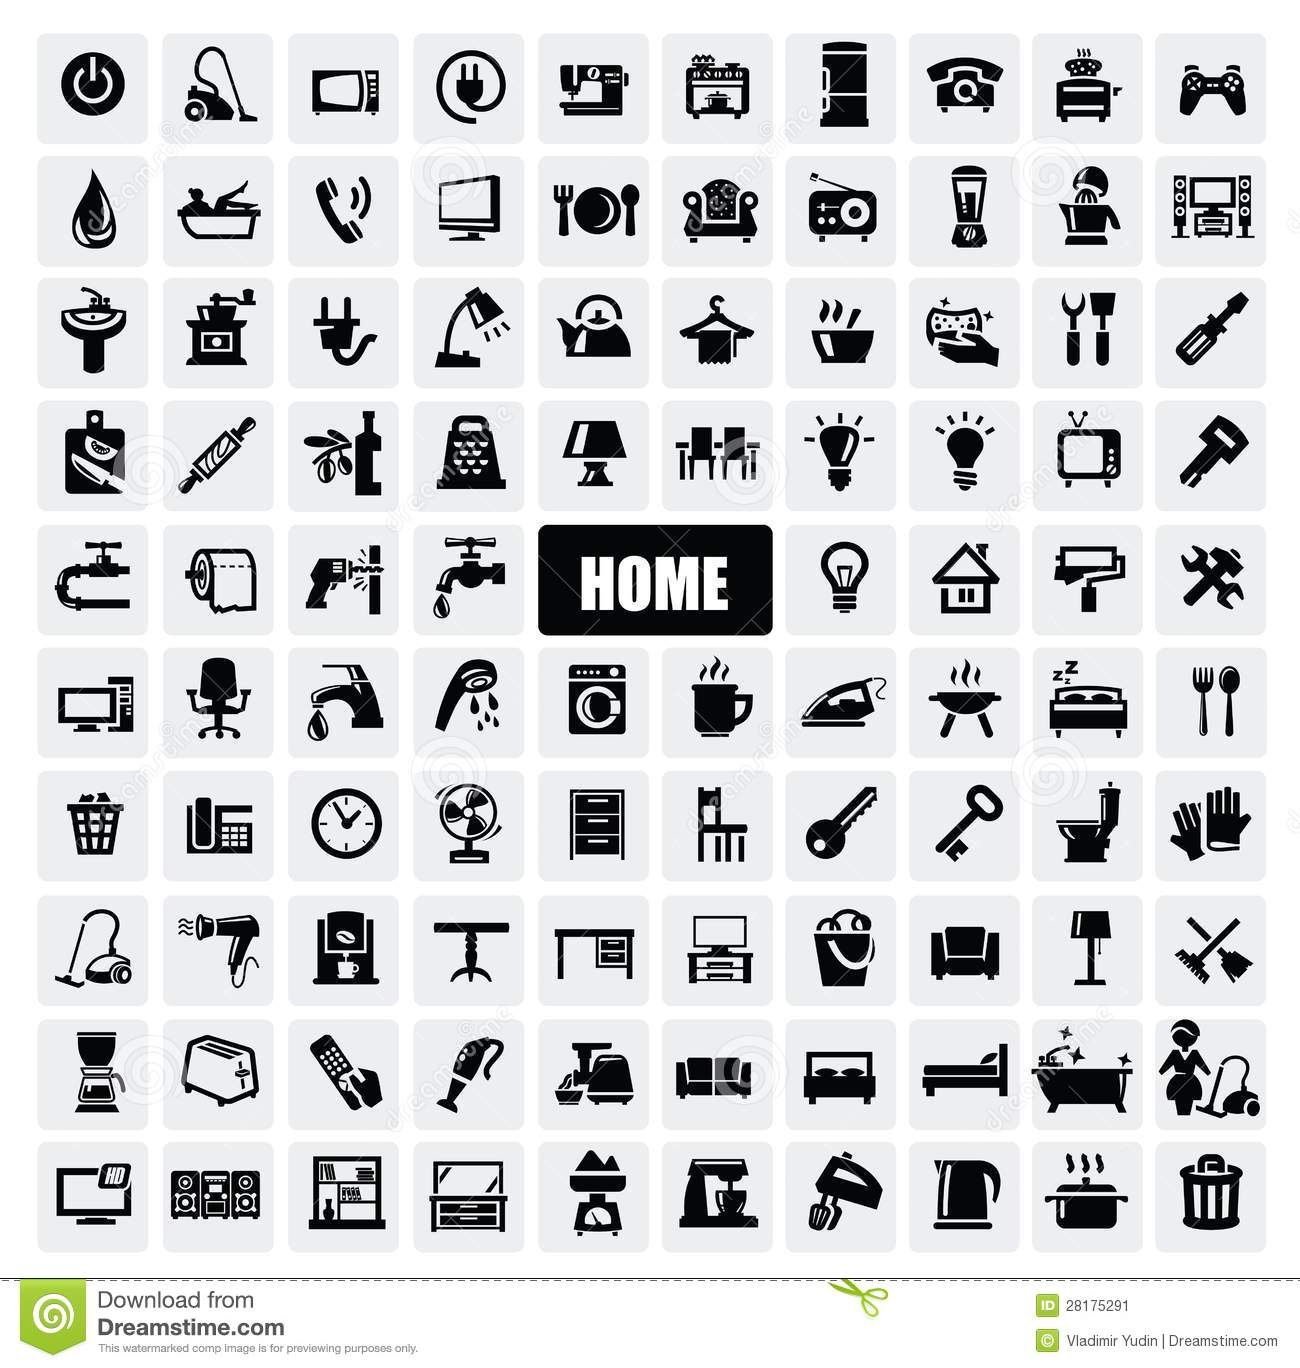 Home appliances icons stock vector. Illustration of